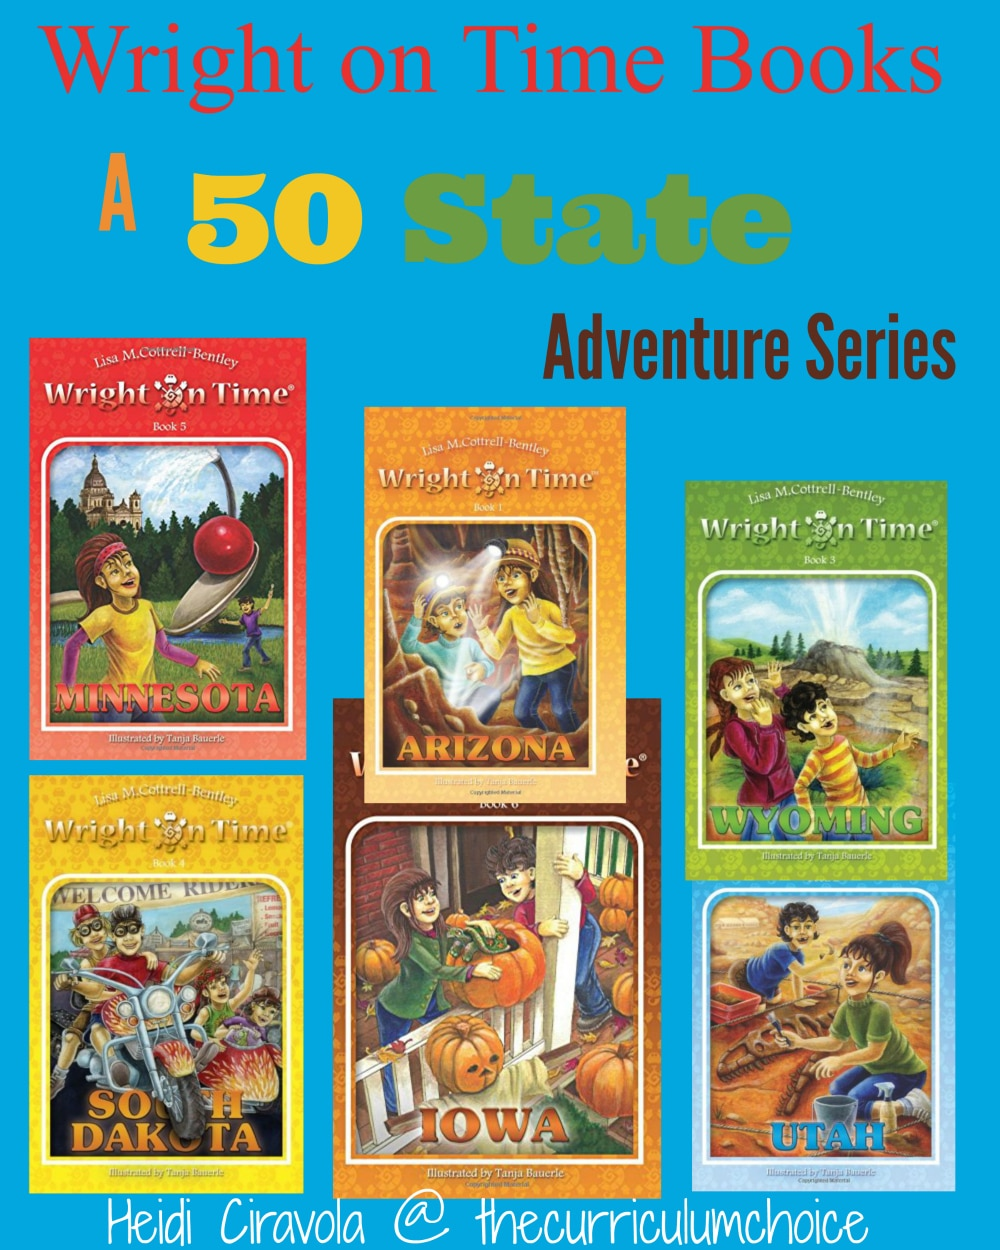 Write on Time Books - A 50 State Adventure from The Curriculum Choice